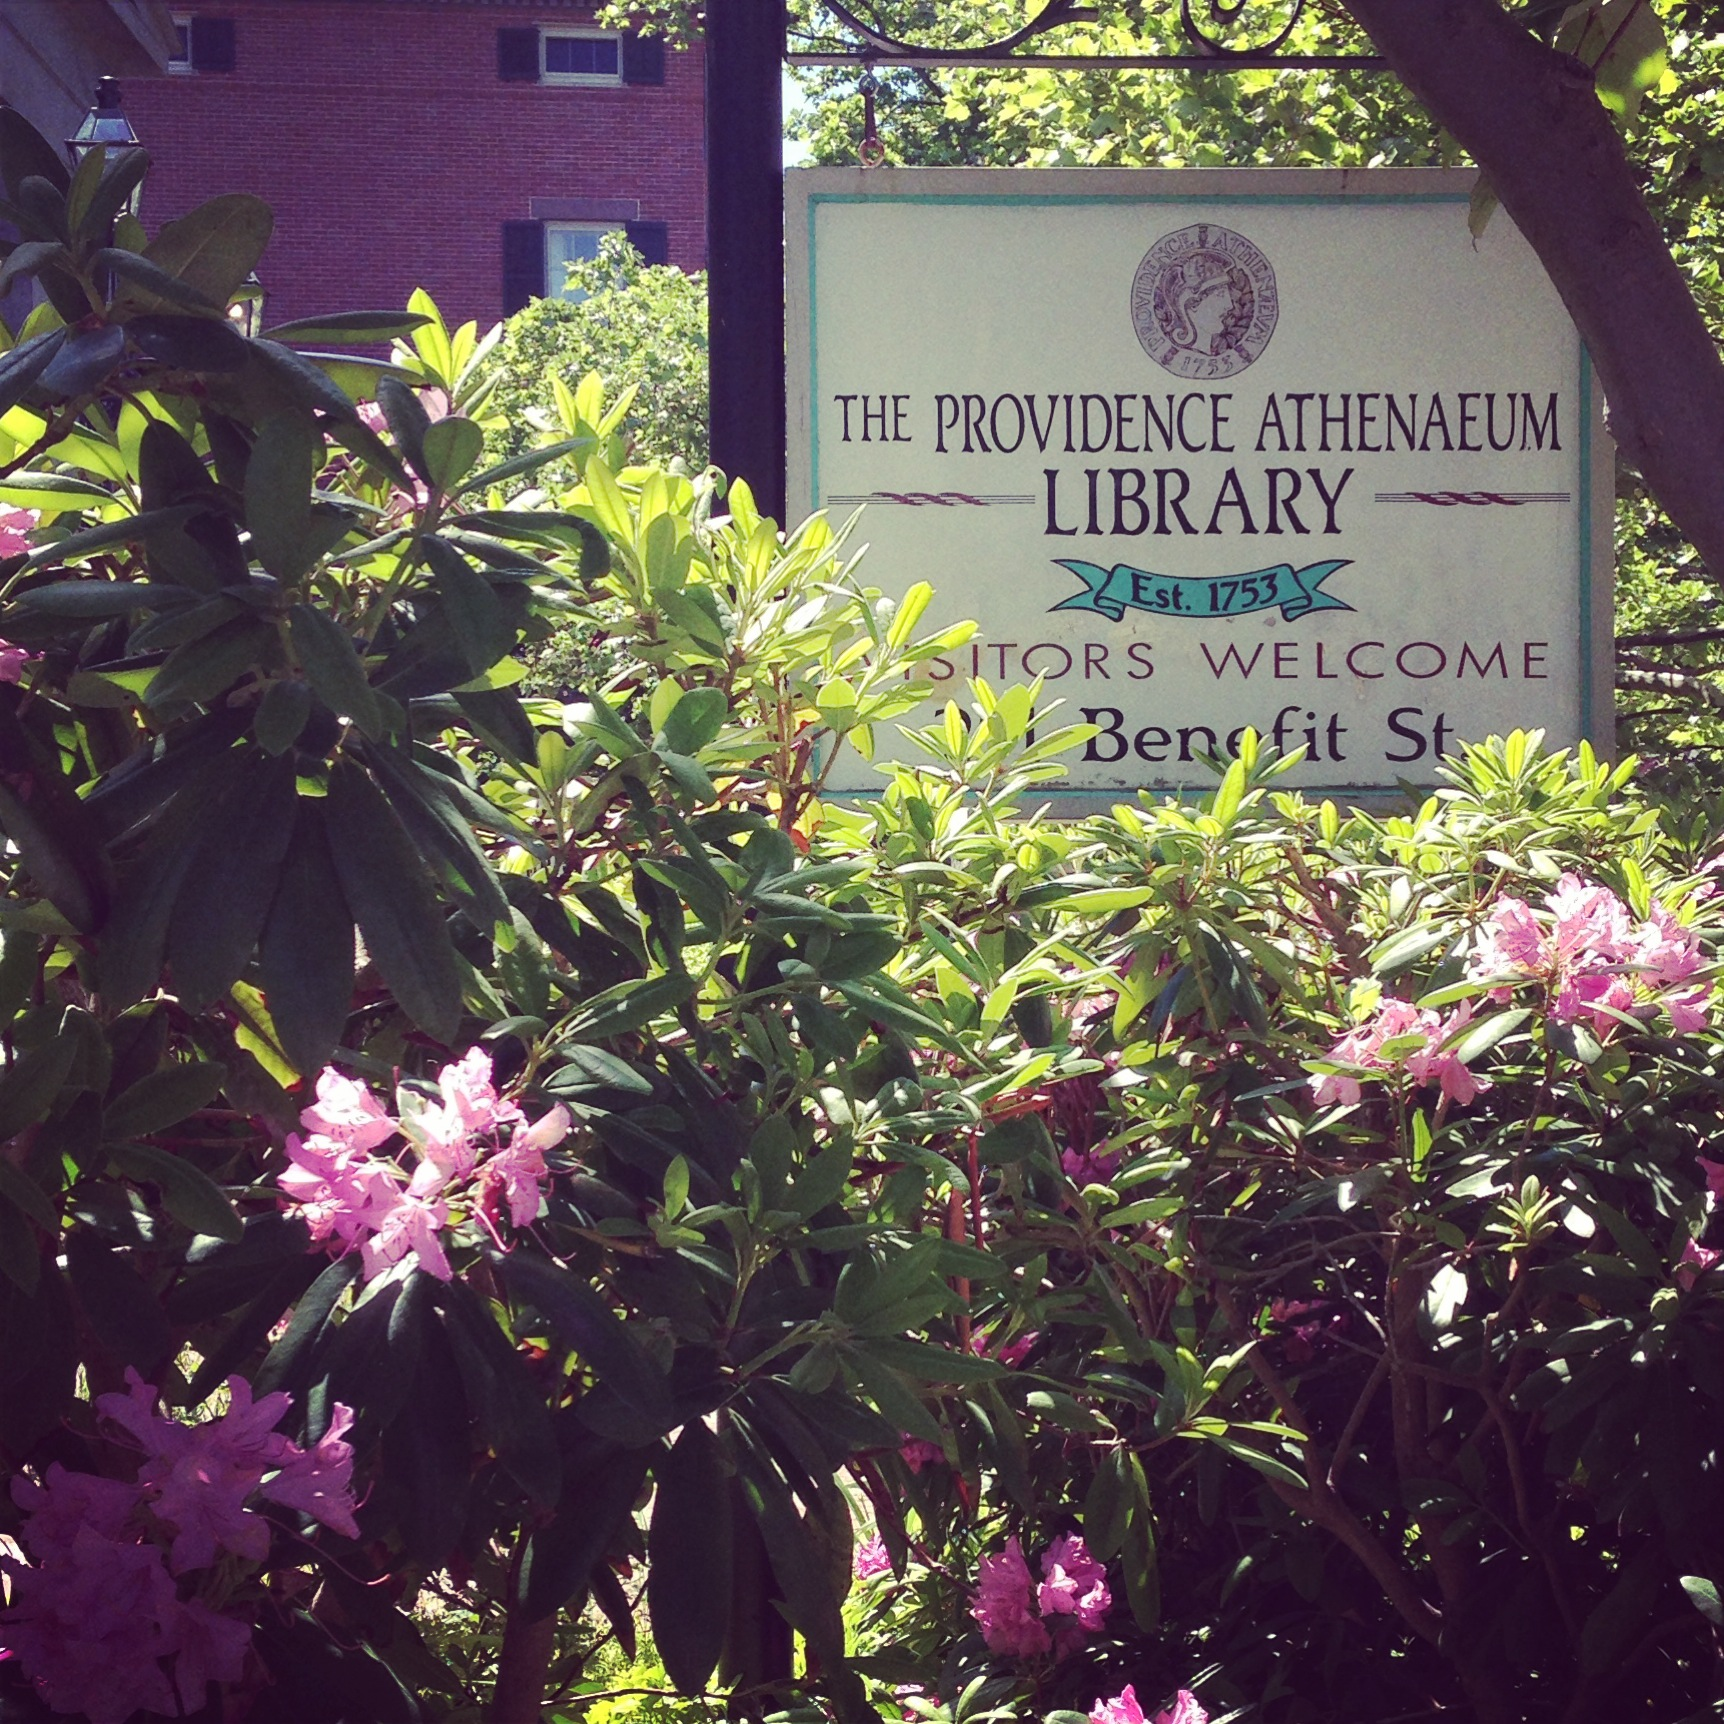 The Athenaeum Library in Providence, Rhode Island